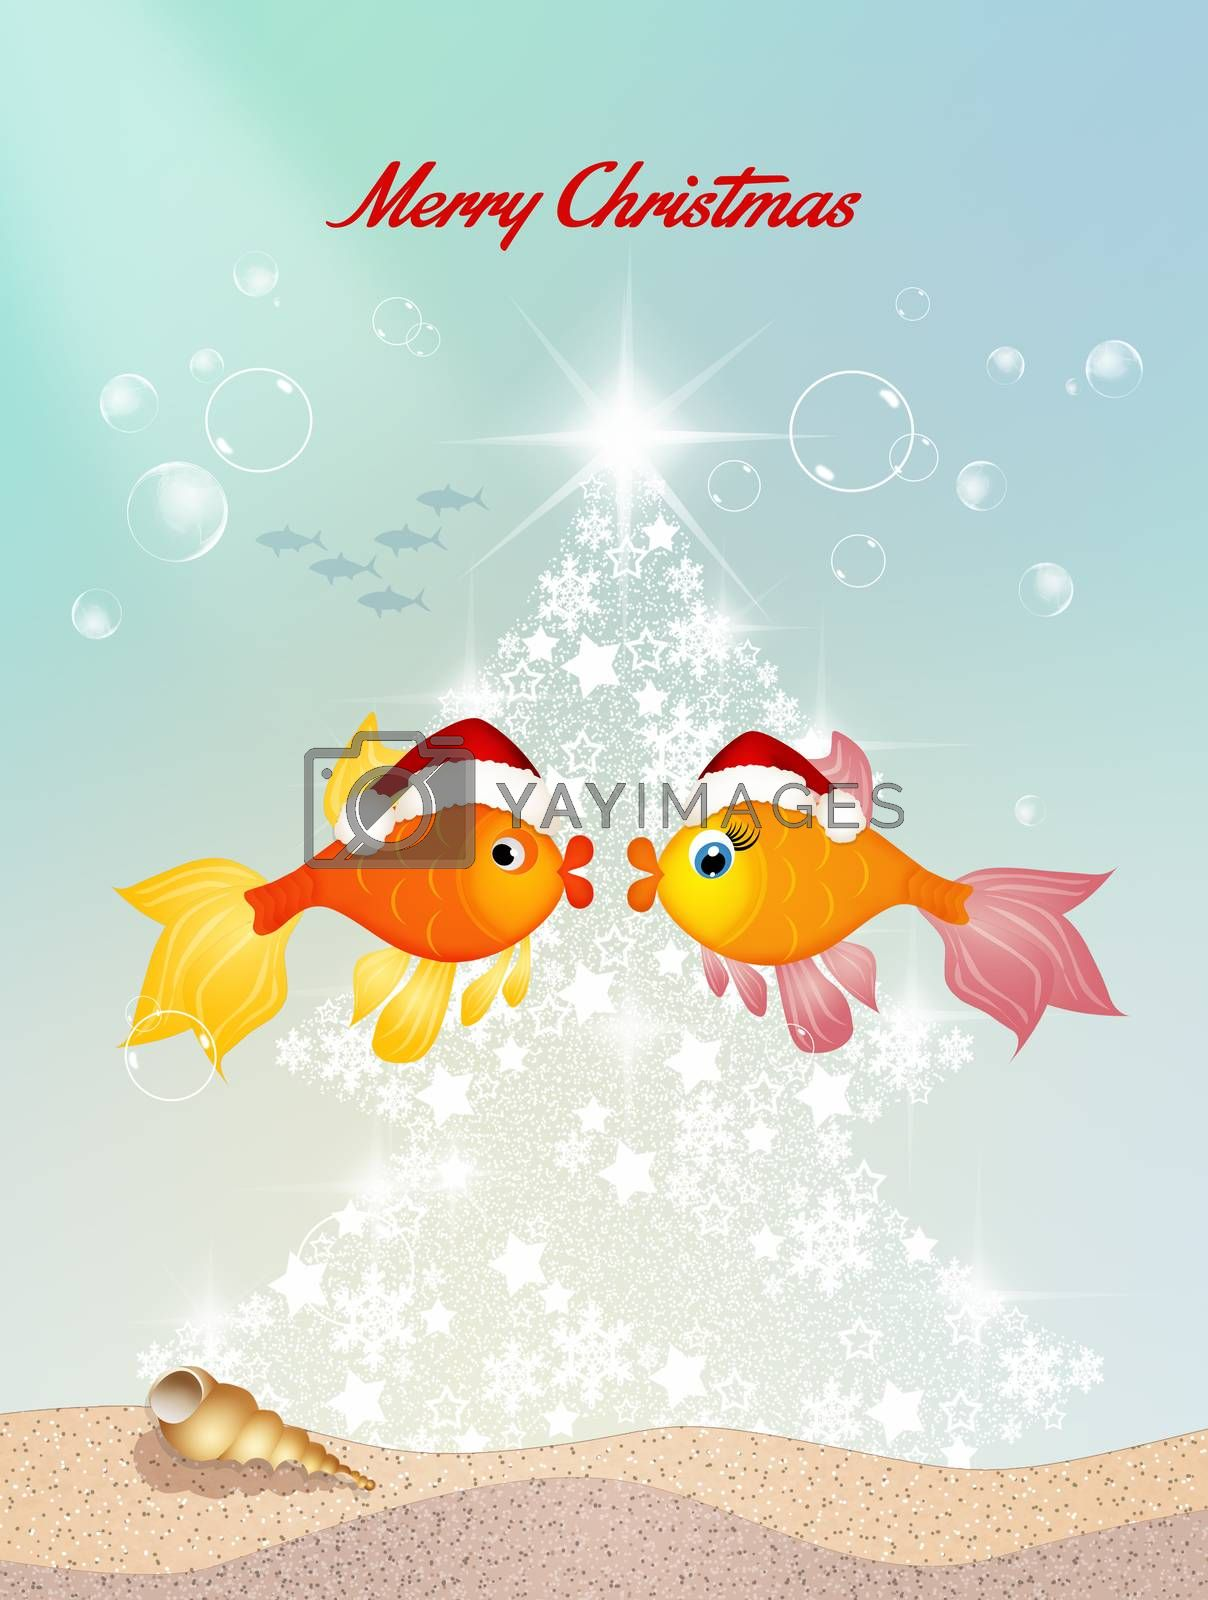 illustration of greeting for Christmas